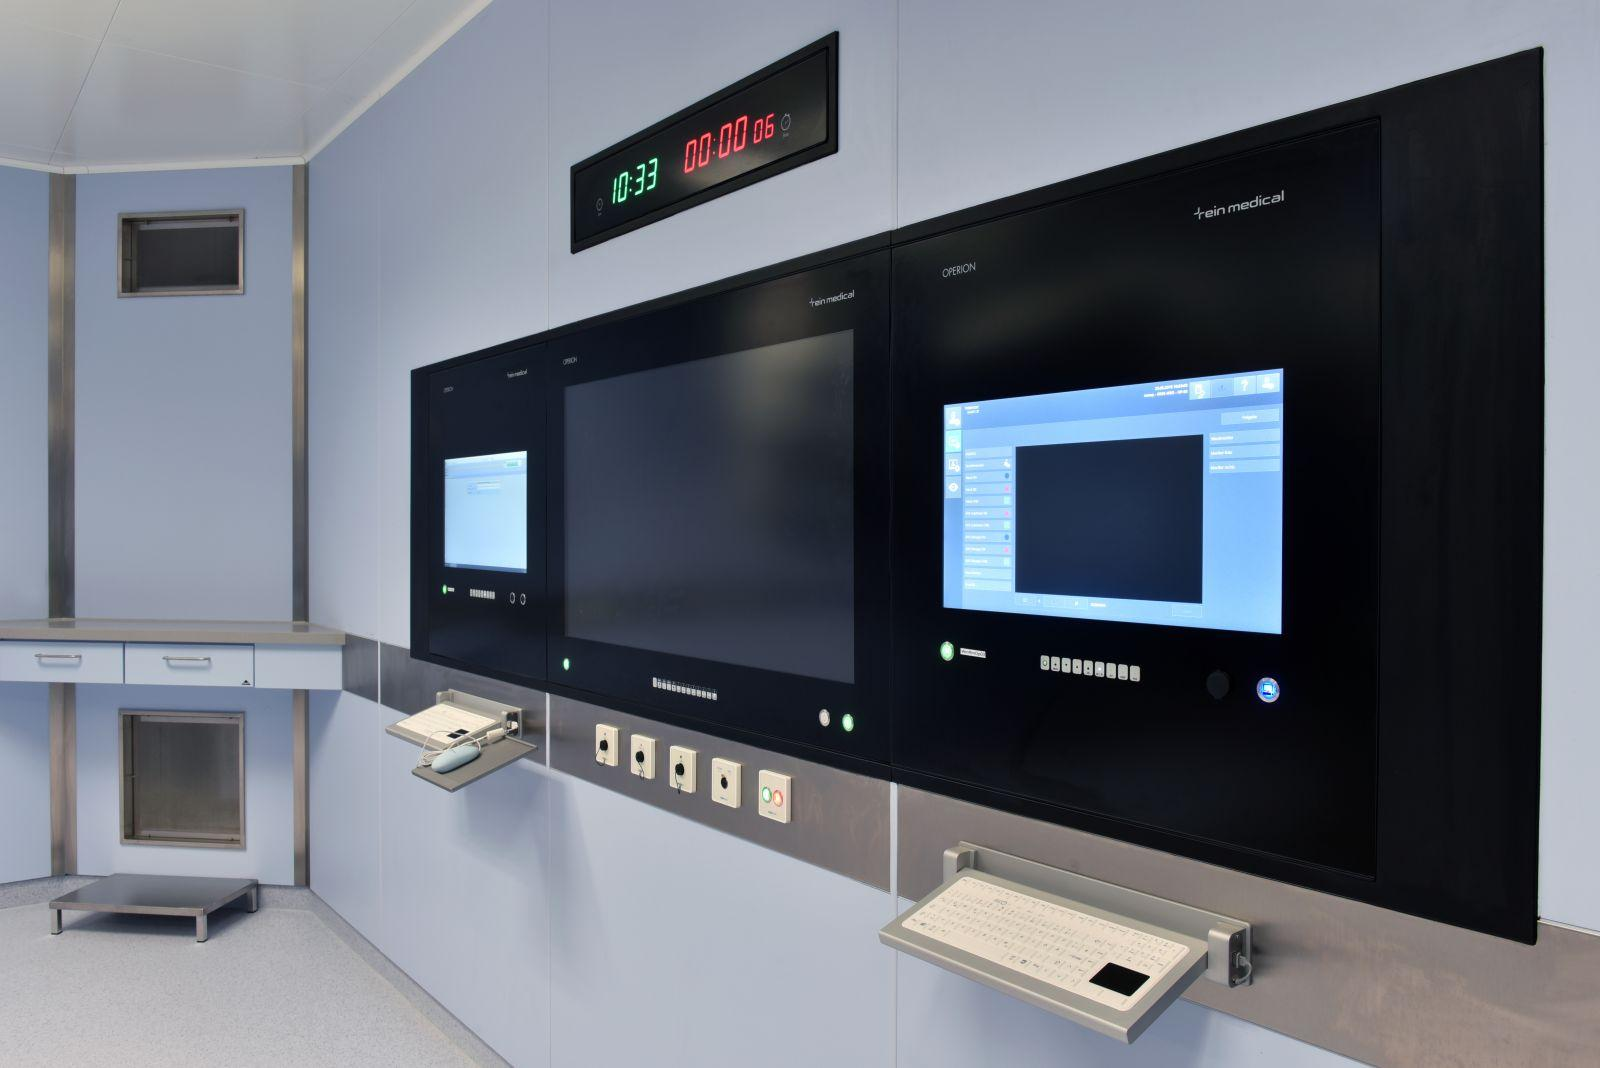 OP Workstation, Medizinischer Monitor, medical monitor, Touch Monitor